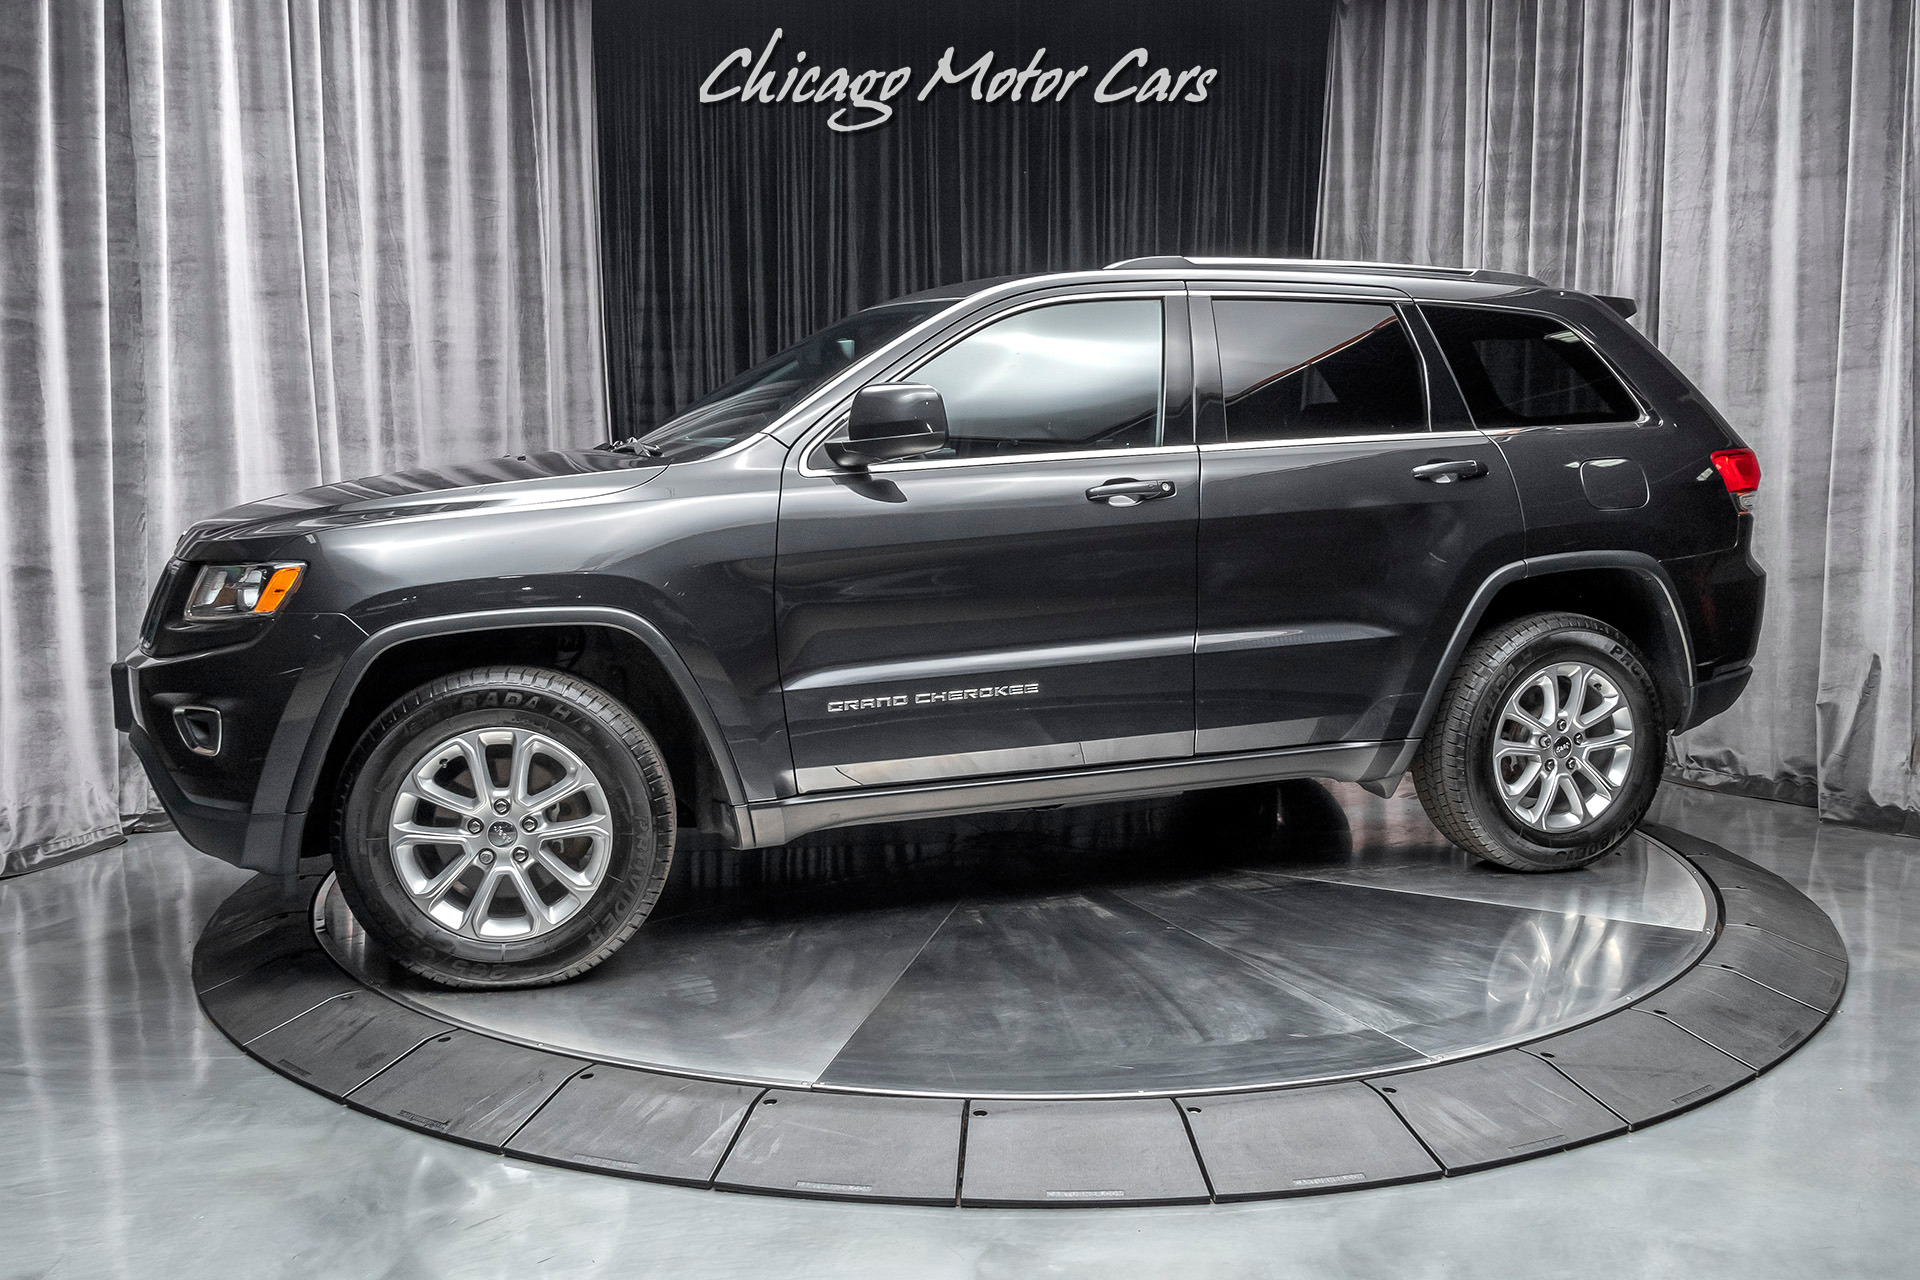 Used 2015 Jeep Grand Cherokee Laredo 4x4 Suv Msrp 36k Uconnect 1 Owner For Sale Special Pricing Chicago Motor Cars Stock 17498b